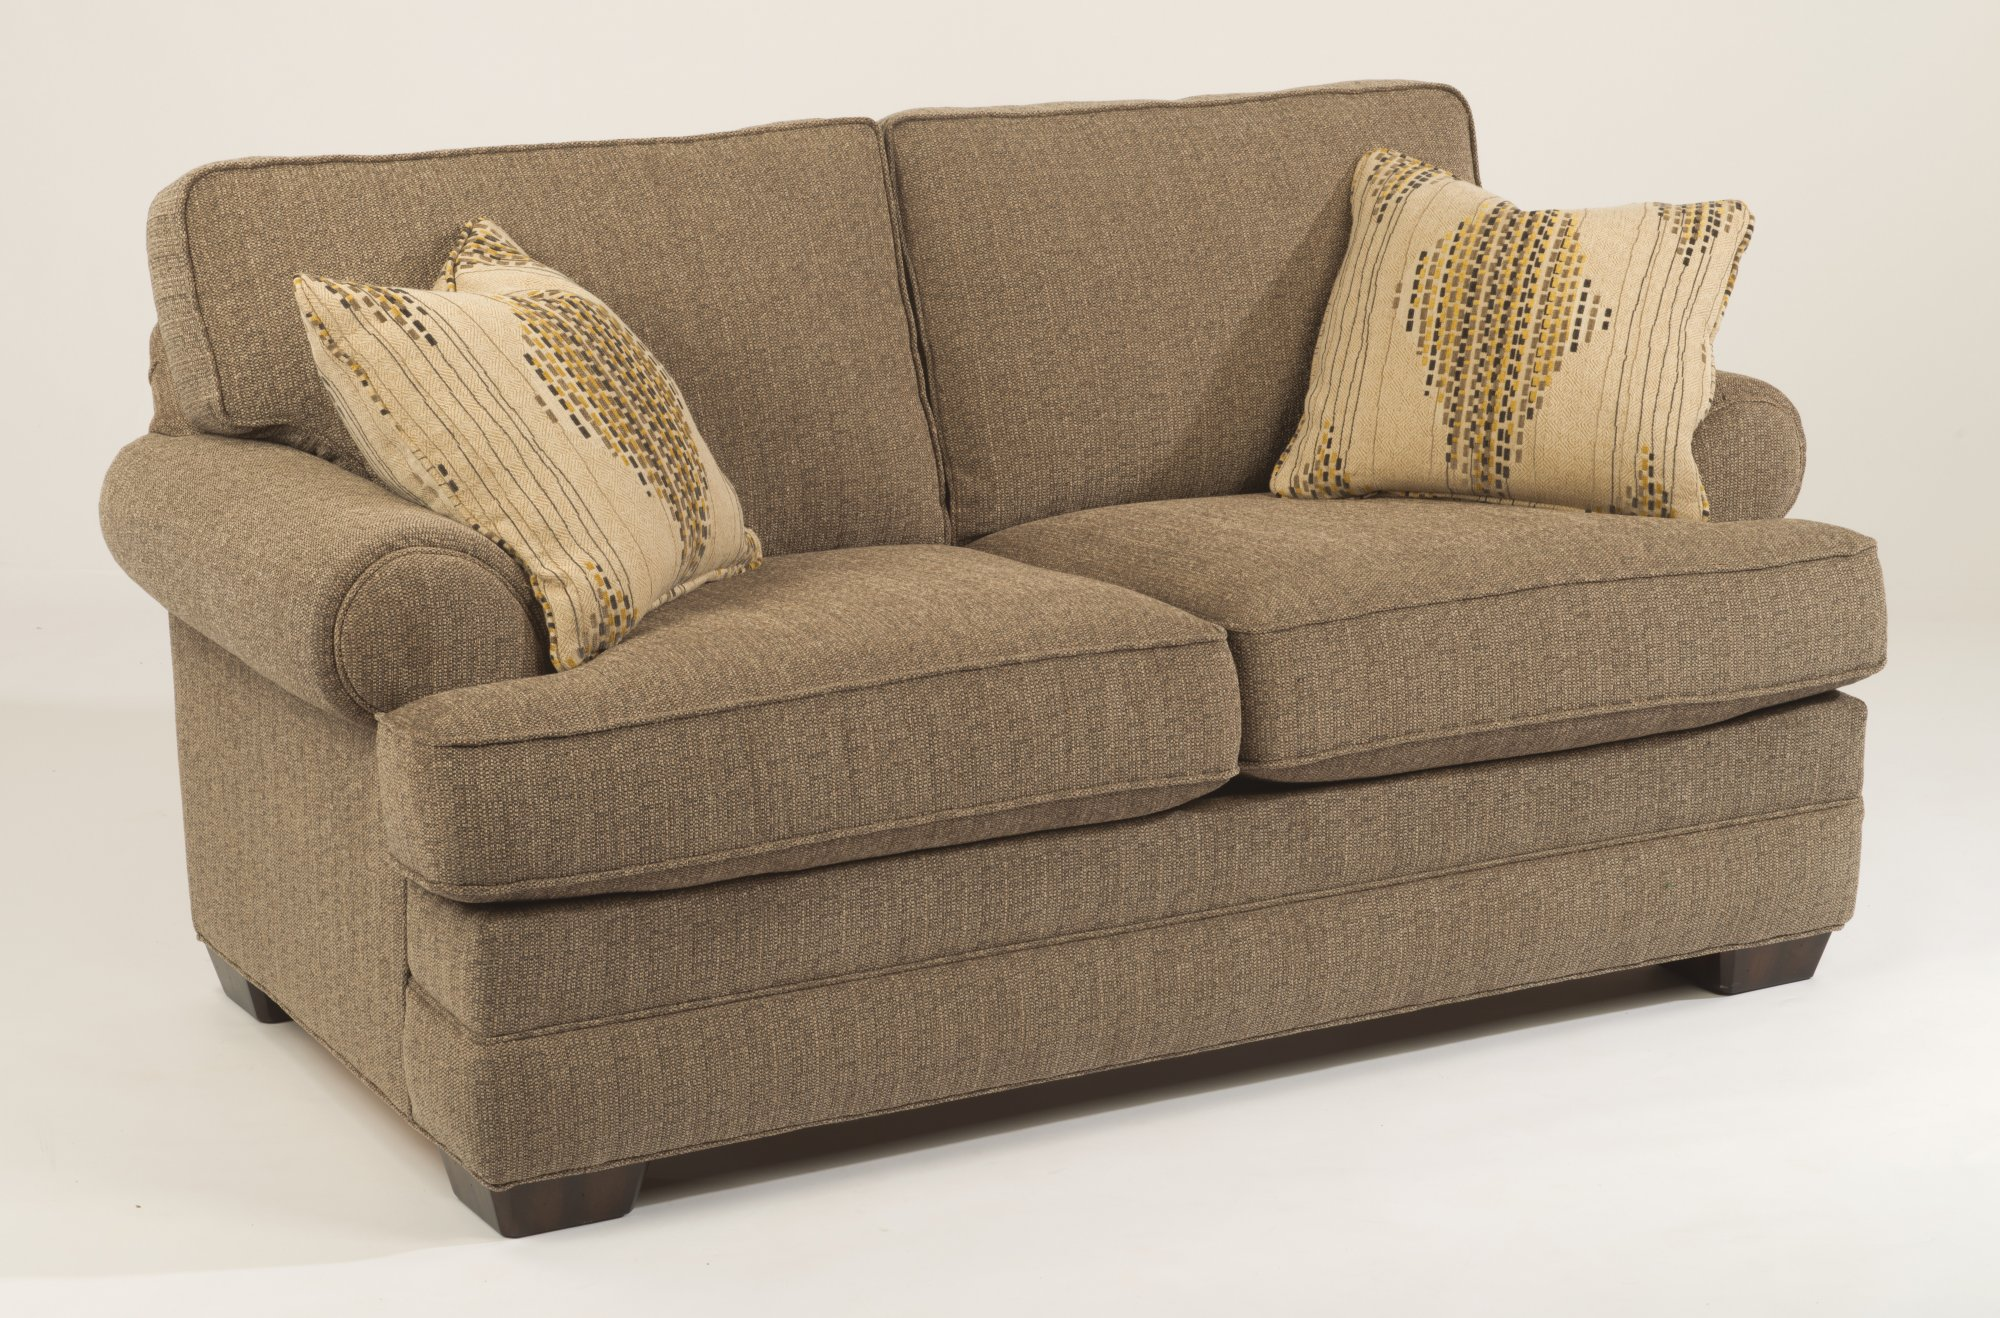 Tilly Fabric Sofa Queen Sleeper Flexsteel Park Home